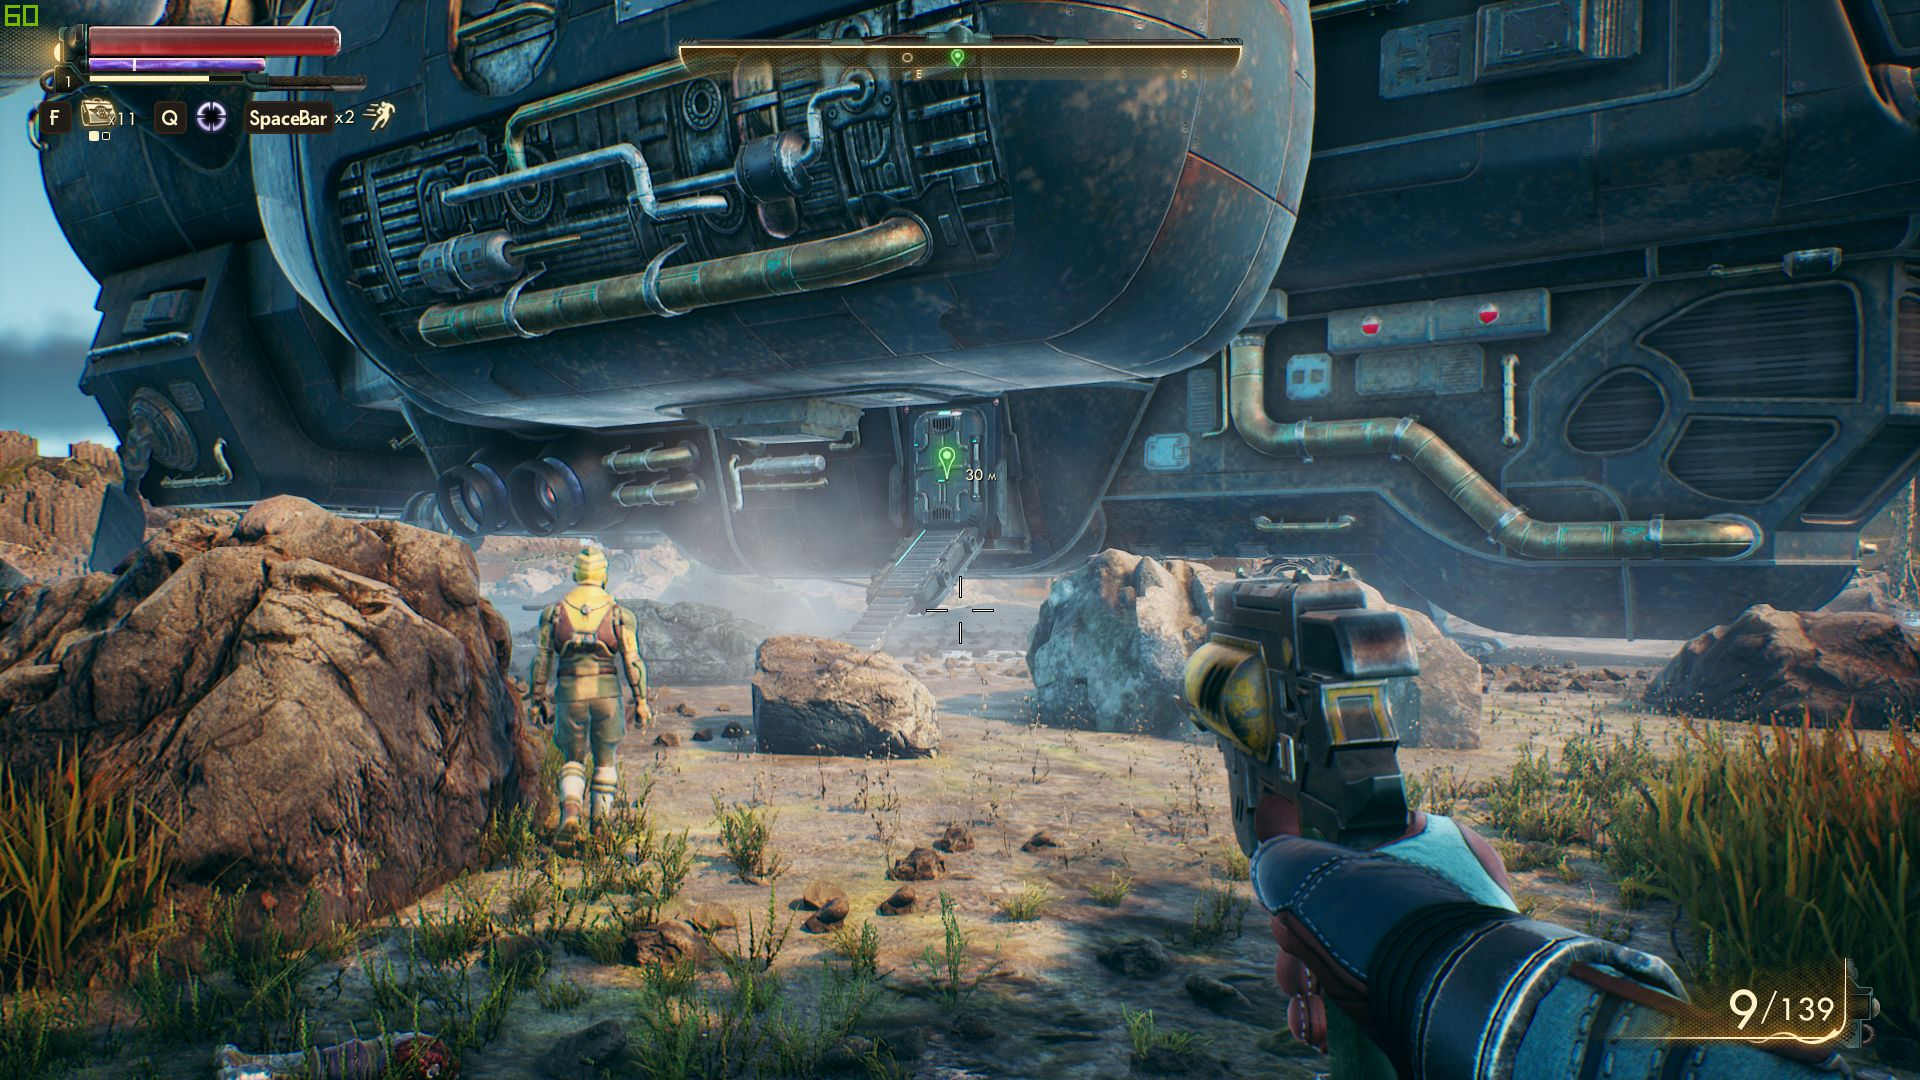 00026.Jpg - Outer Worlds, the